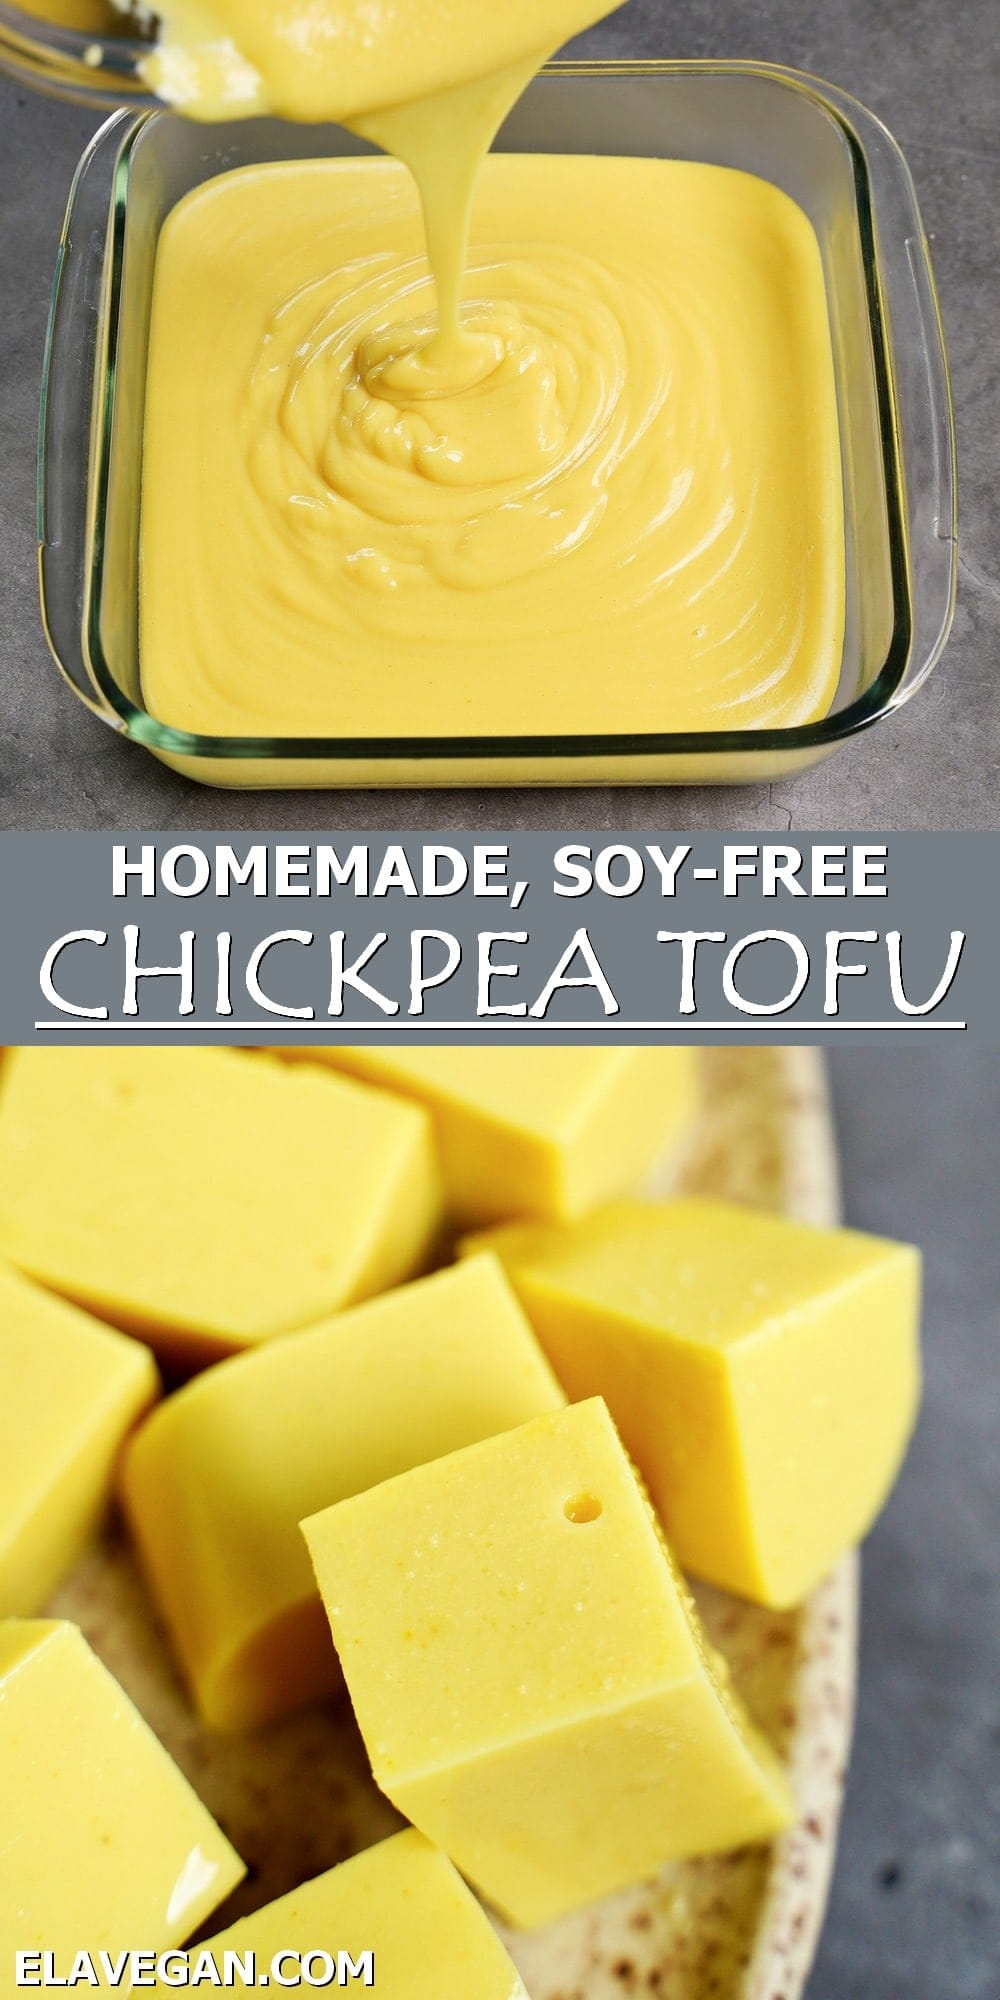 Pinterest Collage homemade, soy-free chickpea tofu